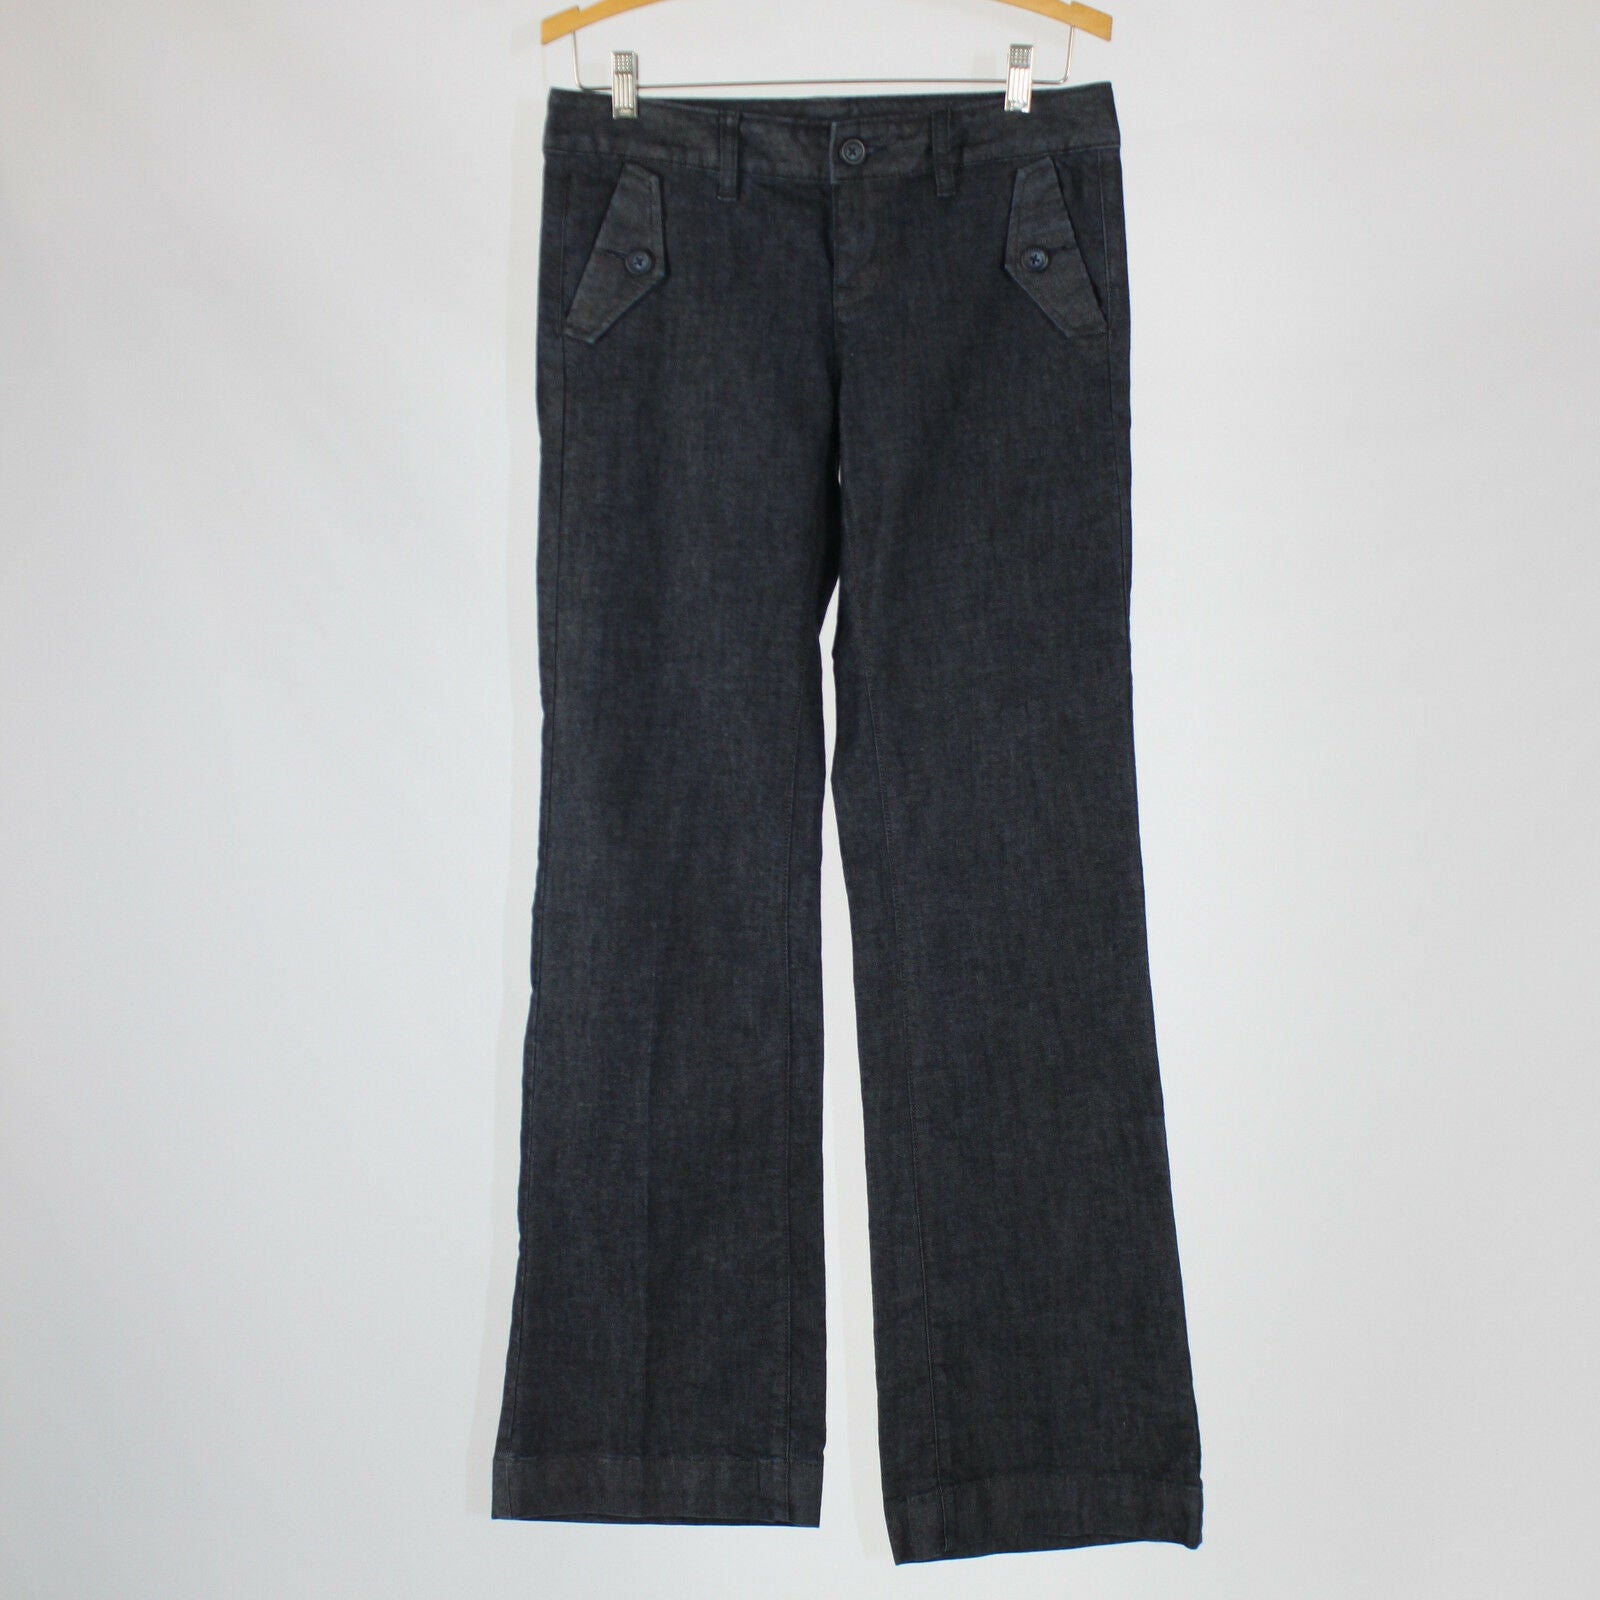 Dark denim cotton blend GAP boot cut button flap front pocket jeans 4-Newish